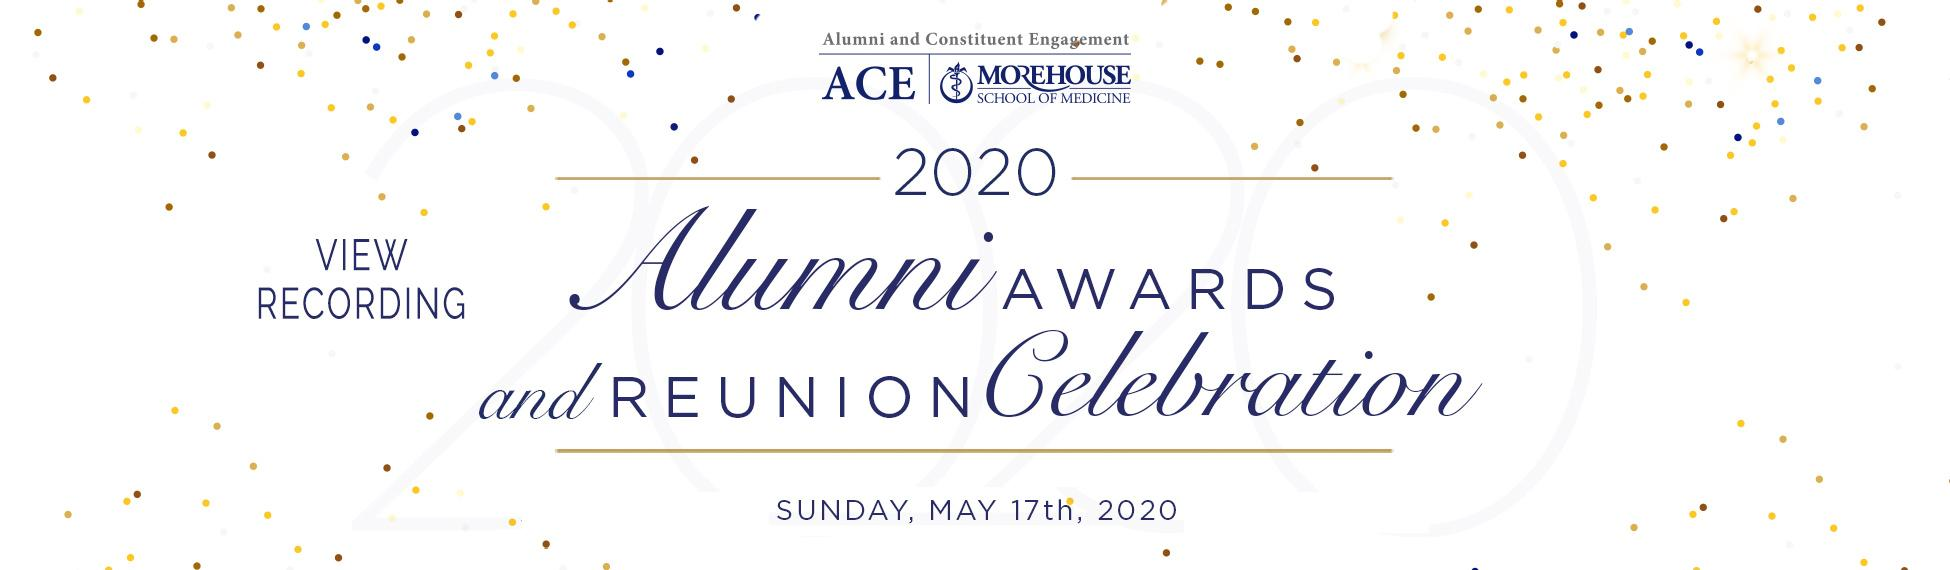 View Recording of 2020 Alumni Awards and Reunion Celebration